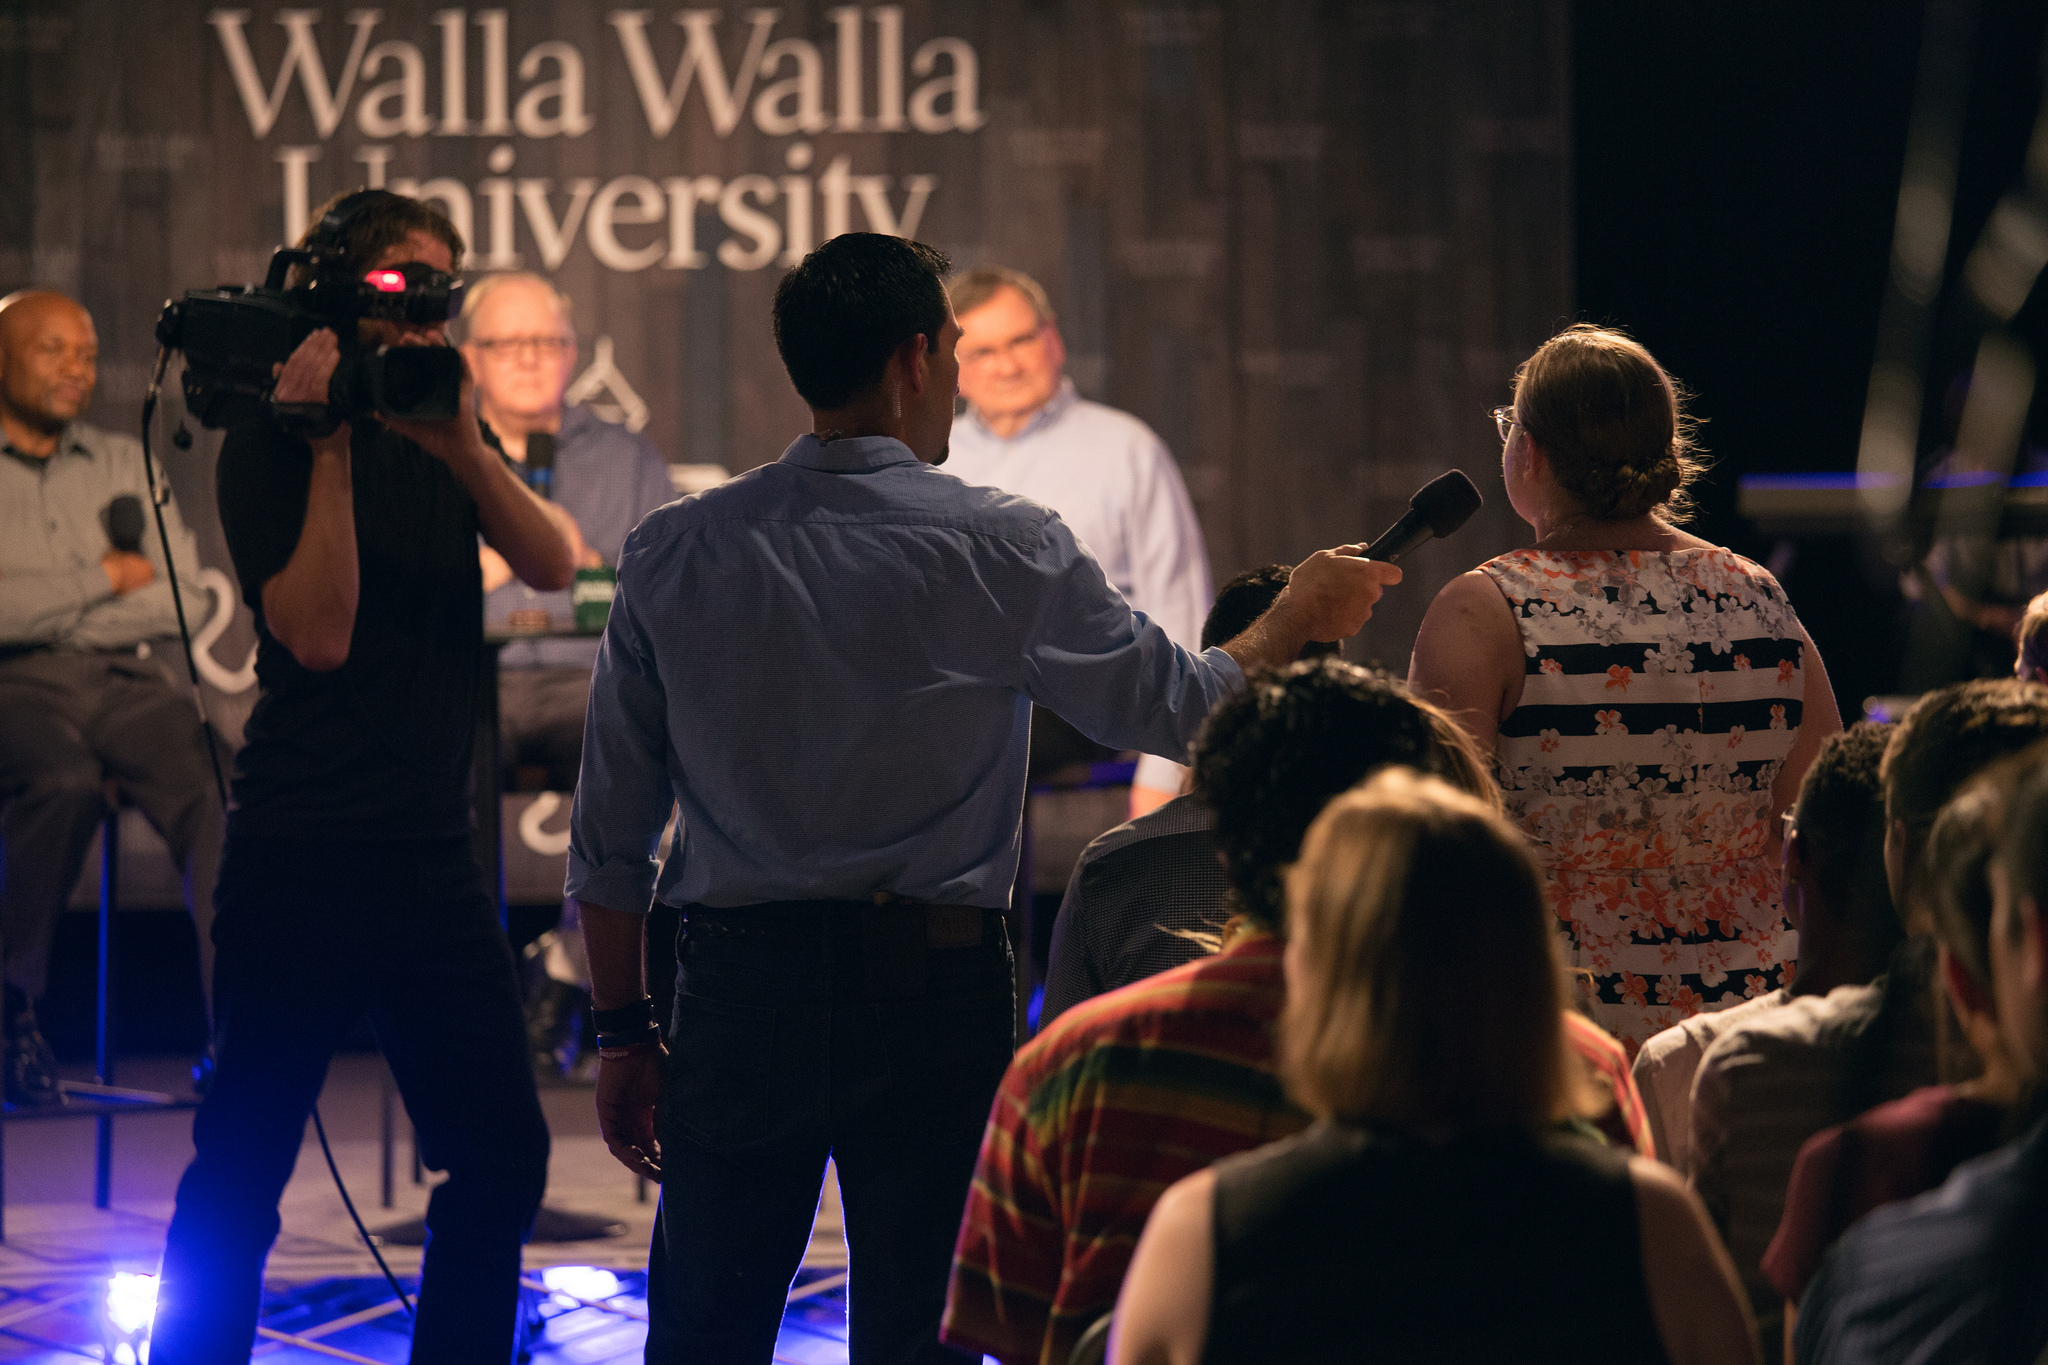 ITTO Walla Walla University Facebook Live show